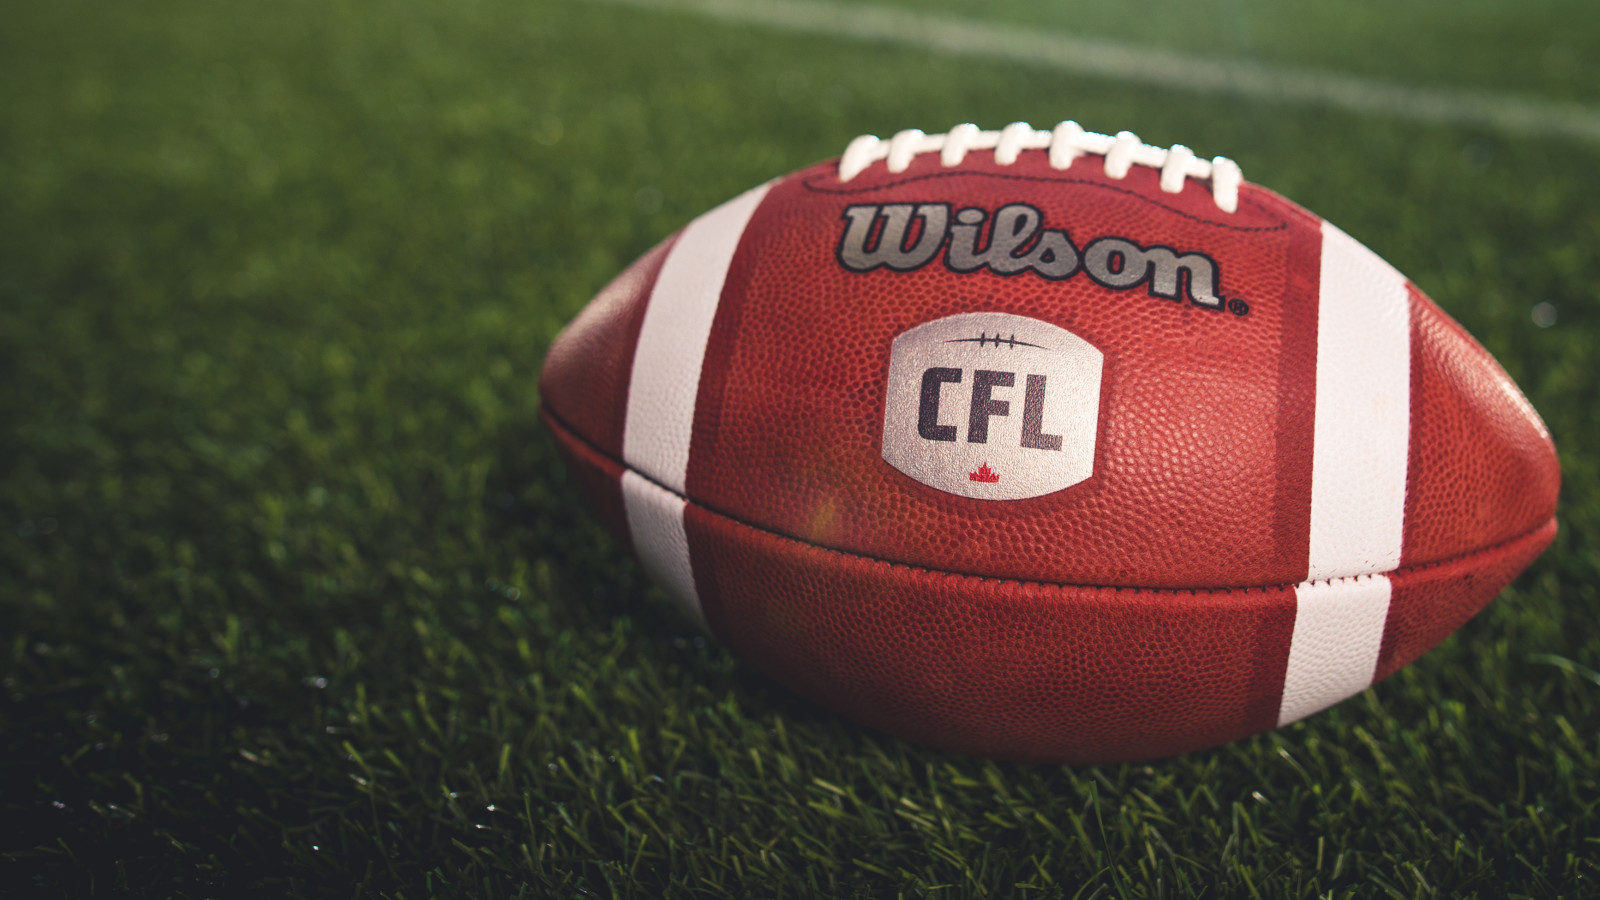 New balls please! The CFL is using a new ball for the 2018 season.